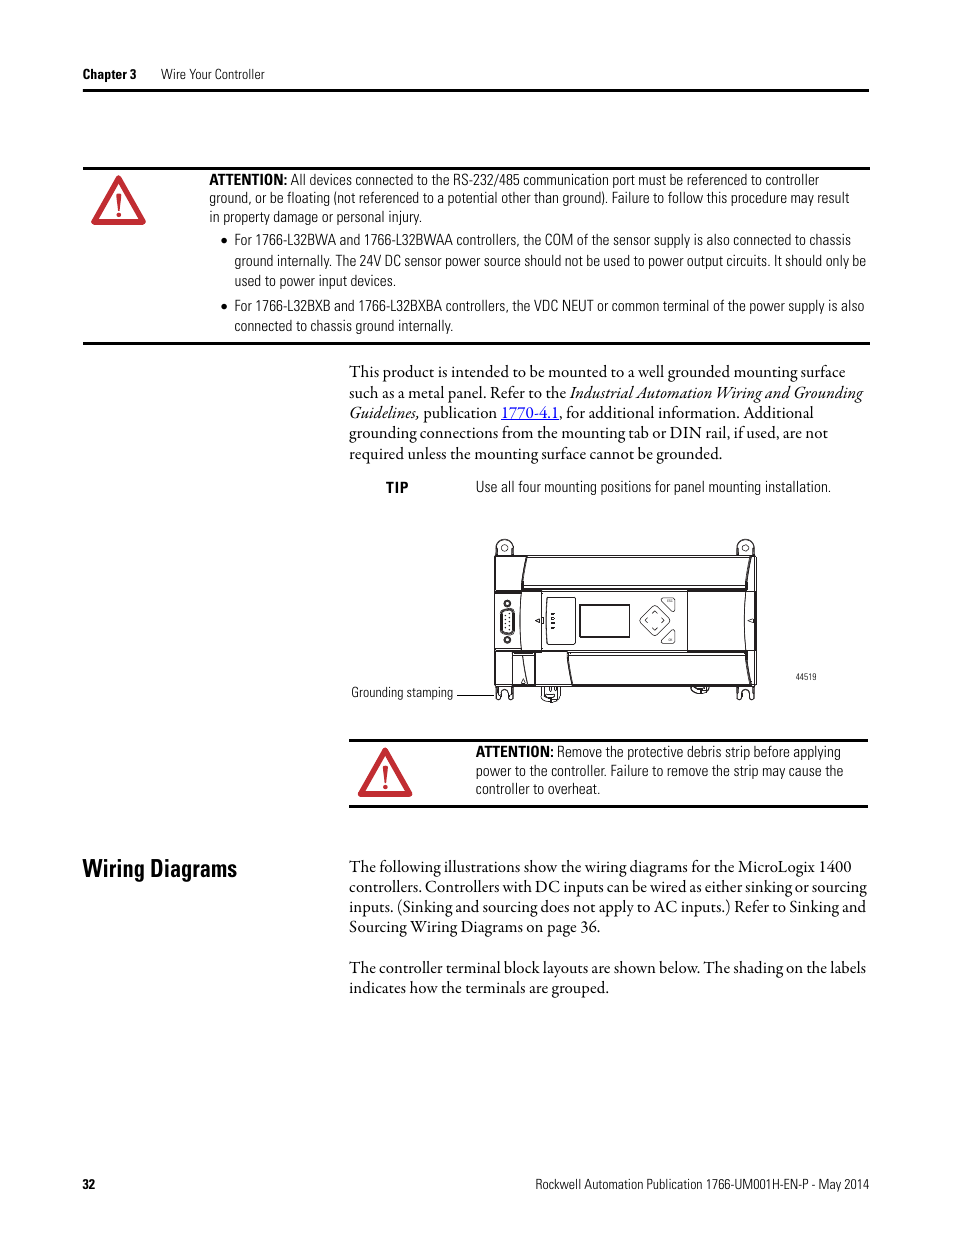 ... Wiring diagrams Rockwell Automation 1766 L MicroLogix 1400 Programmable  Controllers User Manual User Manual